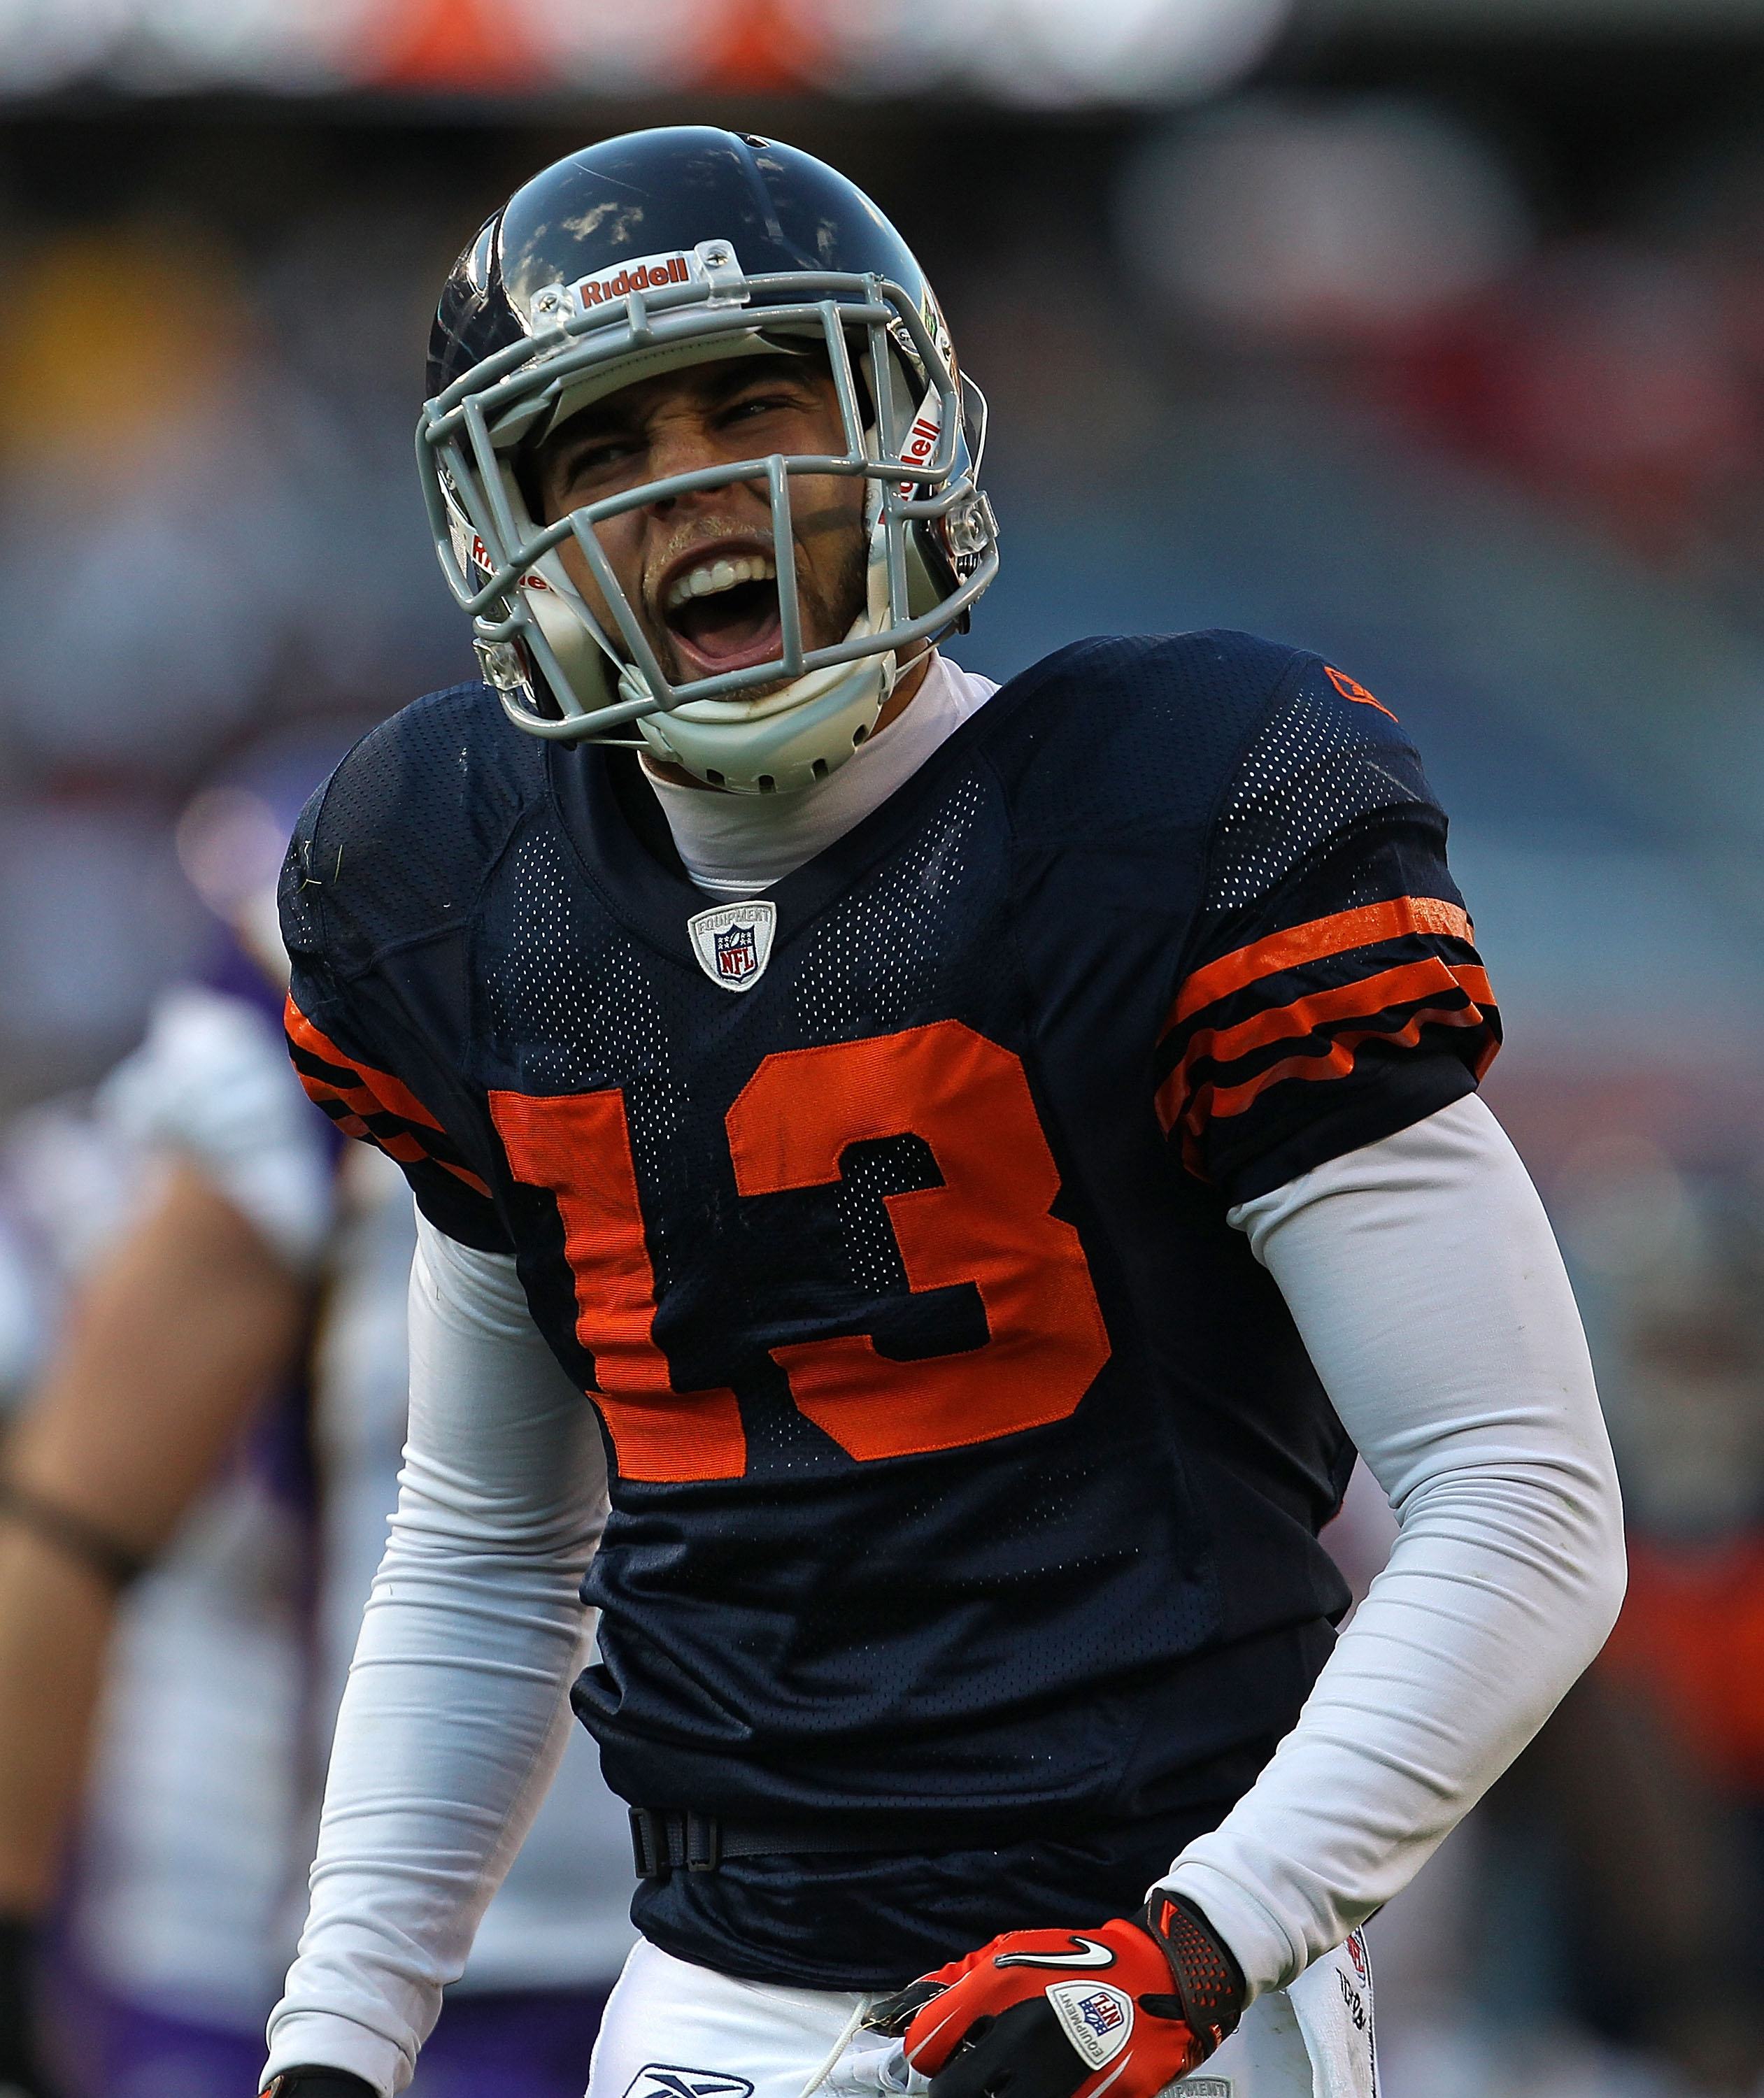 CHICAGO - NOVEMBER 14: Johnny Knox #13 of the Chicago Bears celebrates a first down catch against the Minnesota Vikings at Soldier Field on November 14, 2010 in Chicago, Illinois. The Bears defeated the Vikings 27-13. (Photo by Jonathan Daniel/Getty Image